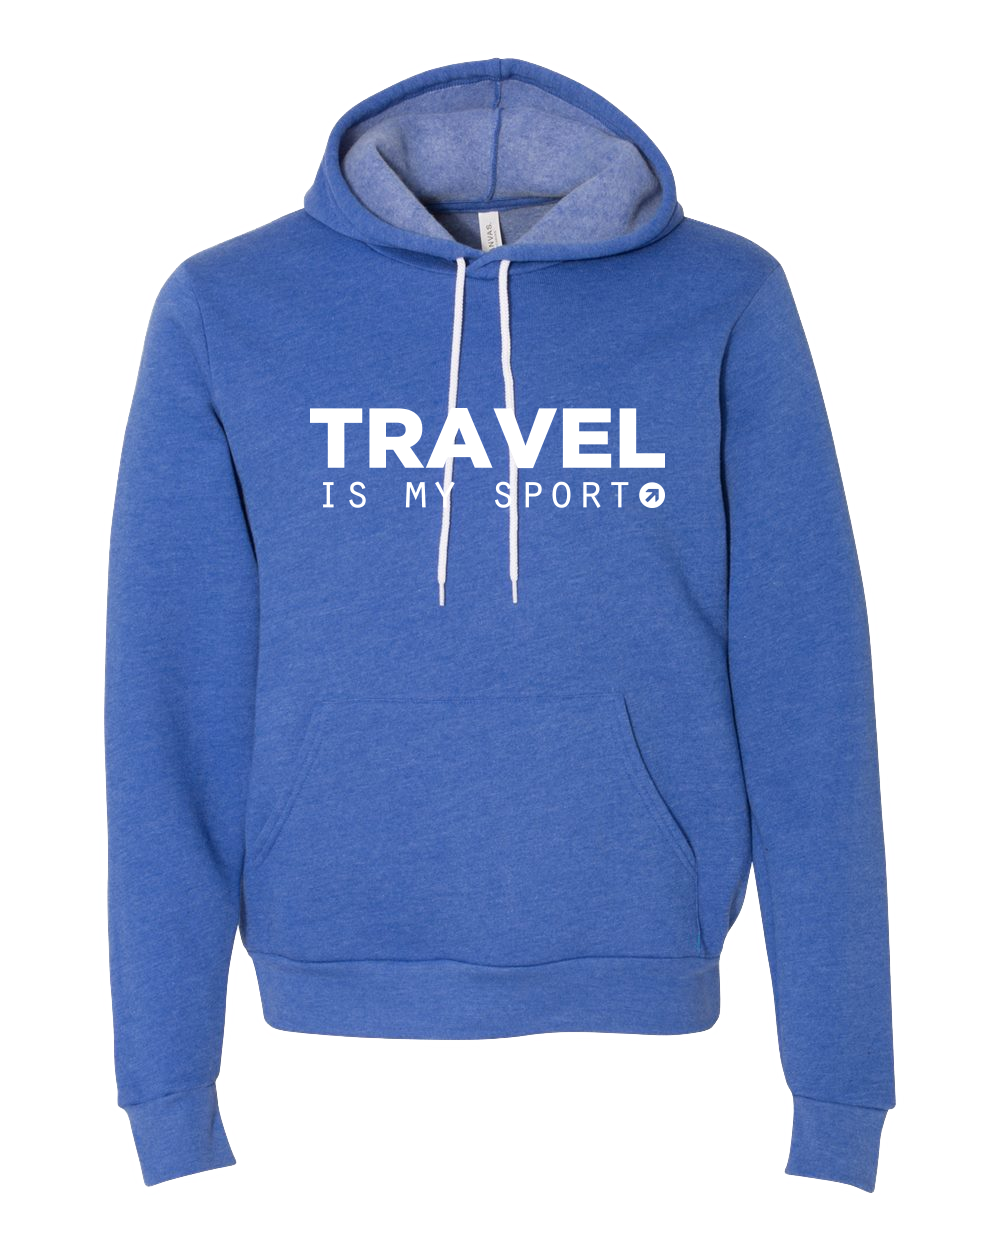 7a22da15 Travel is My Sport Royal Hoodie - The Points Guy